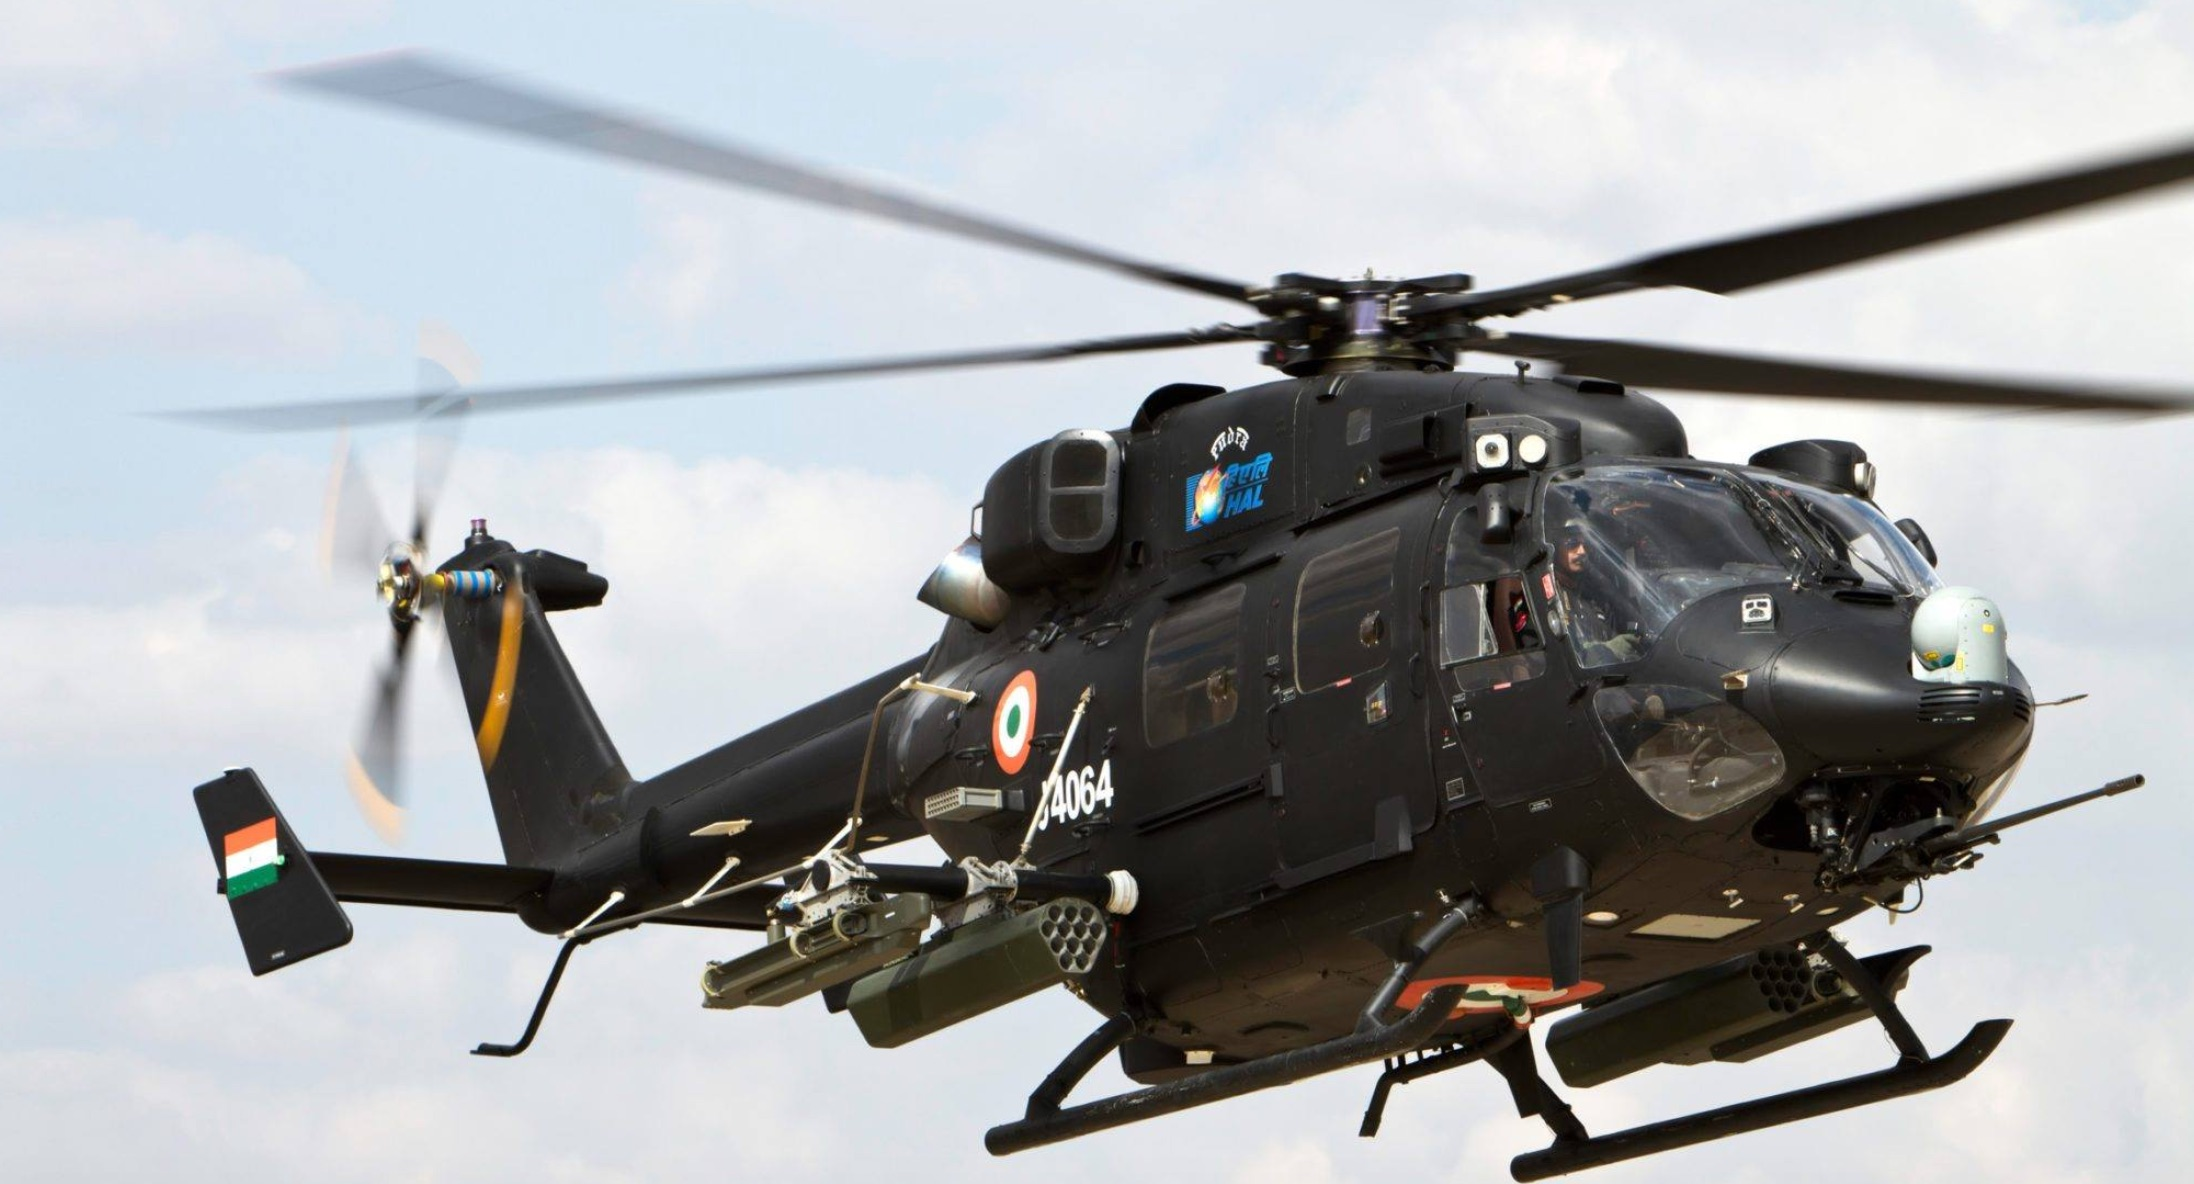 Philippine Air Force evaluate HAL Rudra Light Attack